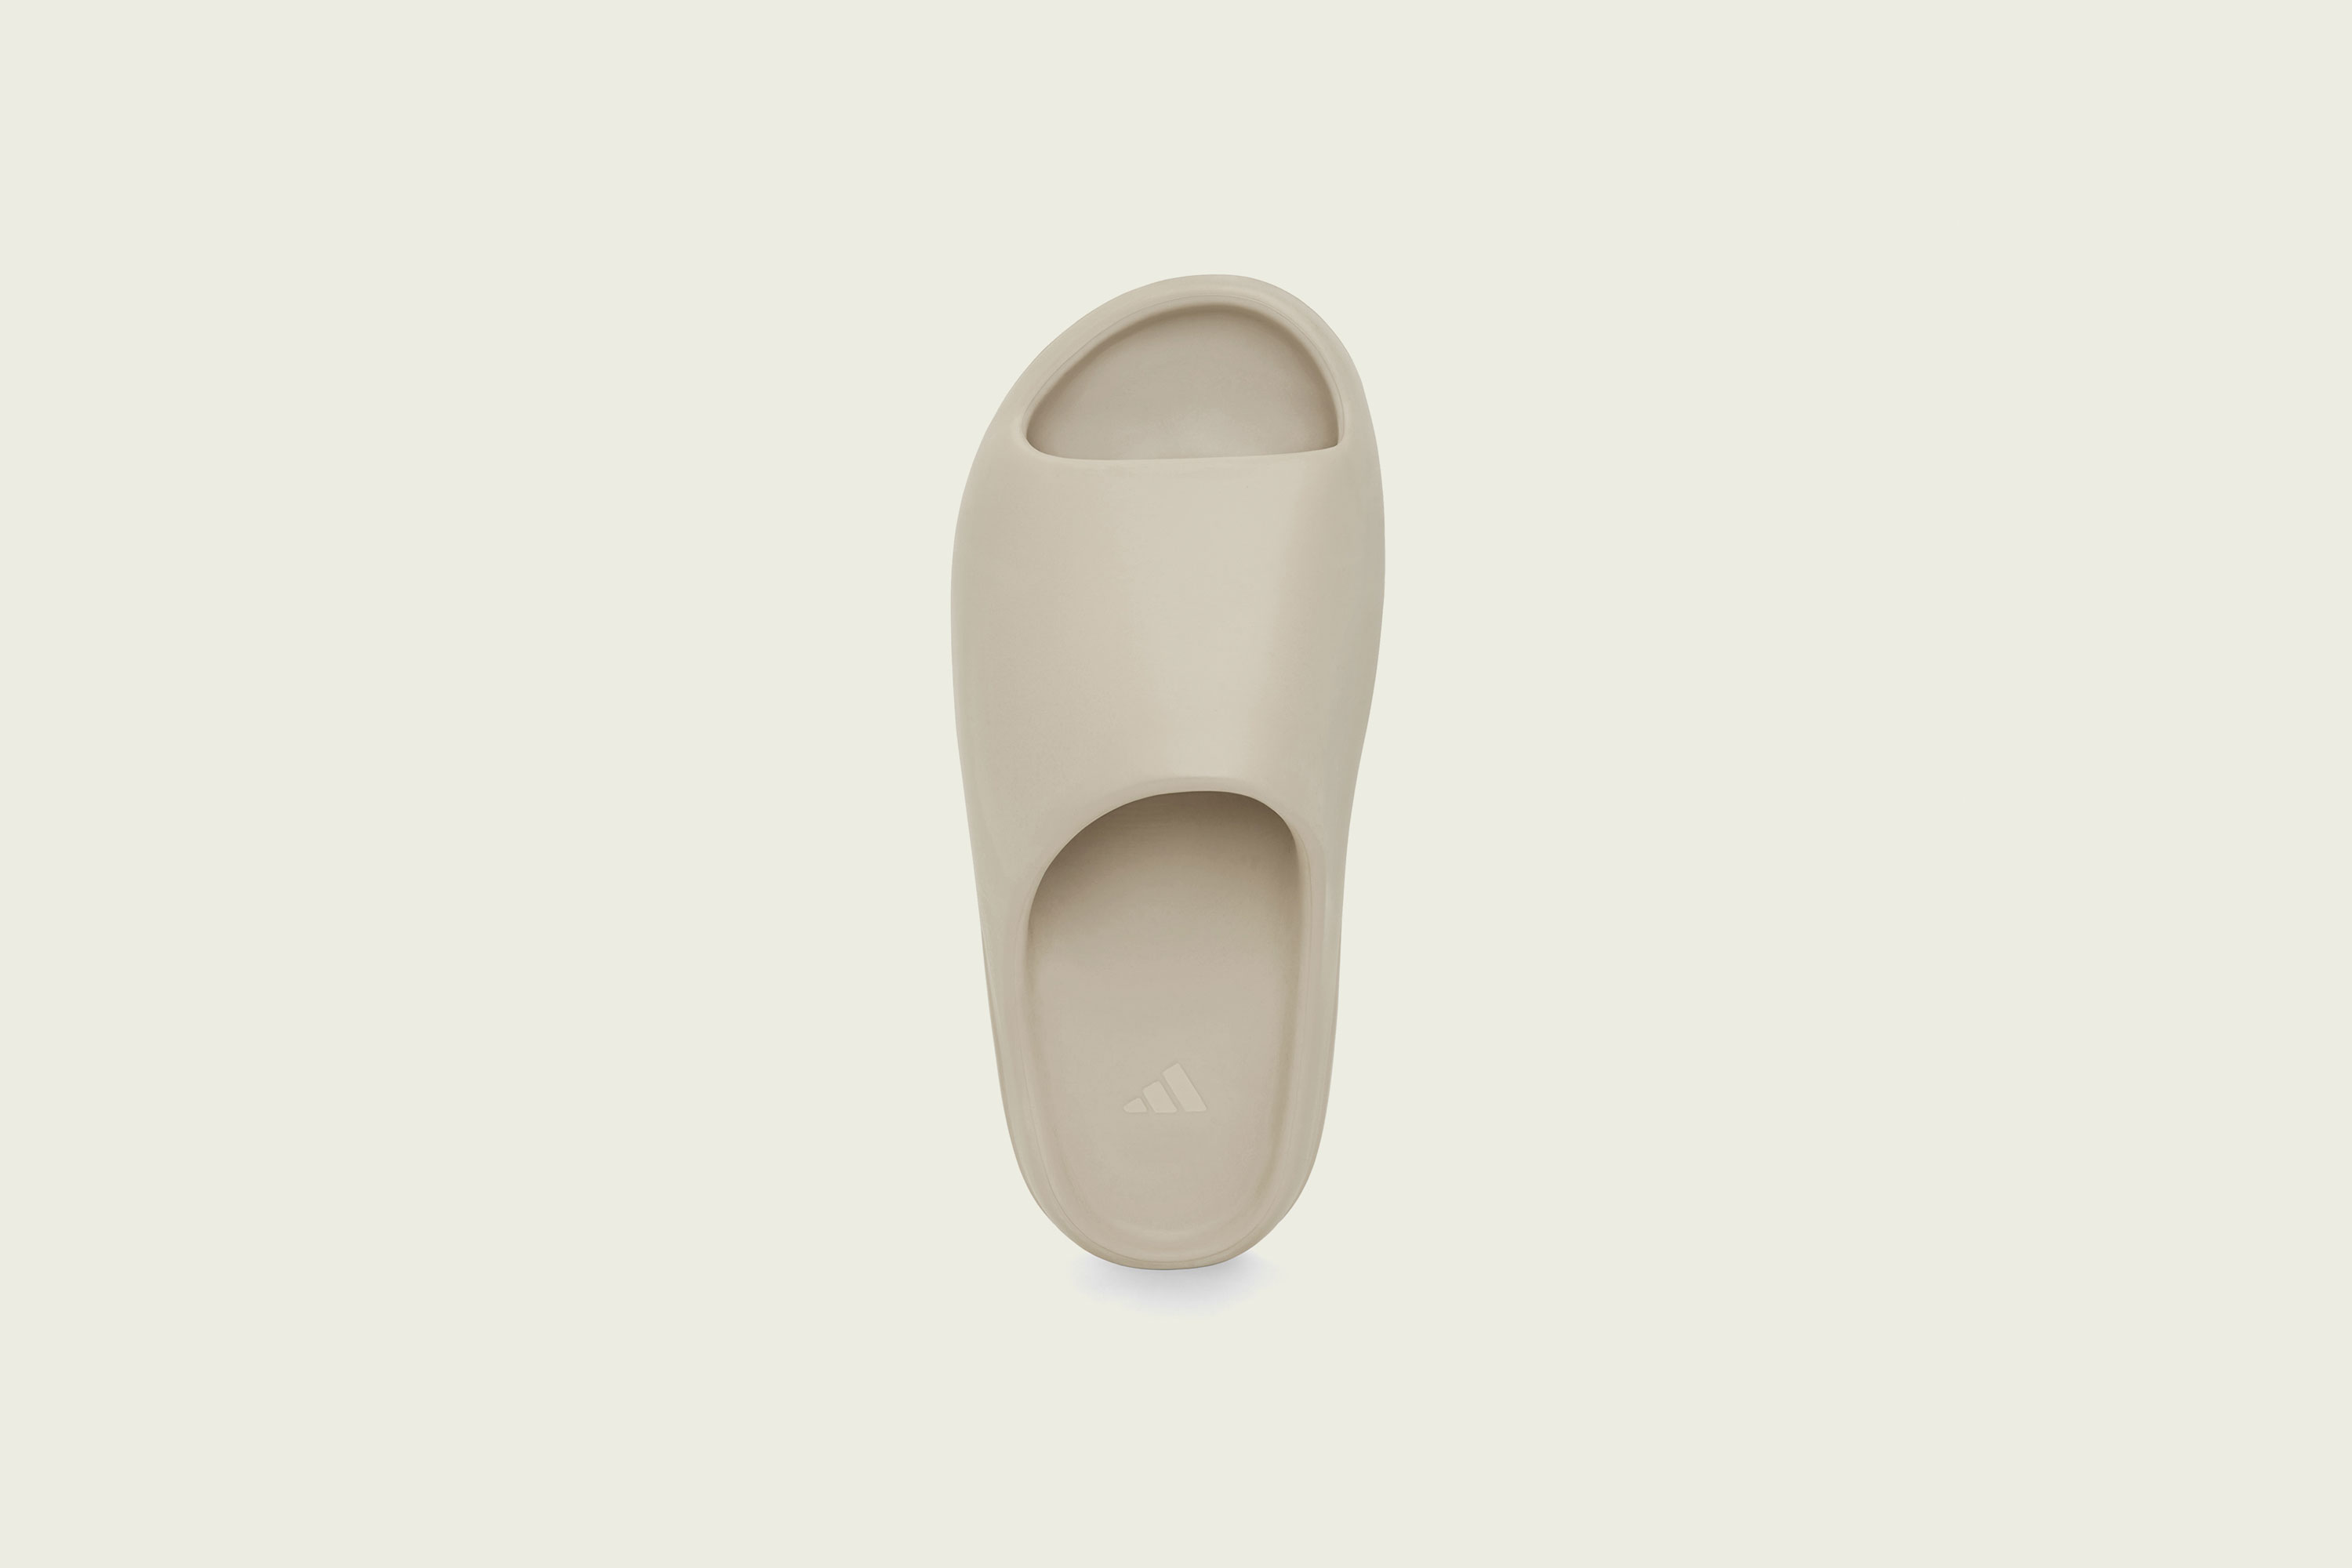 adidas - Yeezy Slide - Pure - Up There